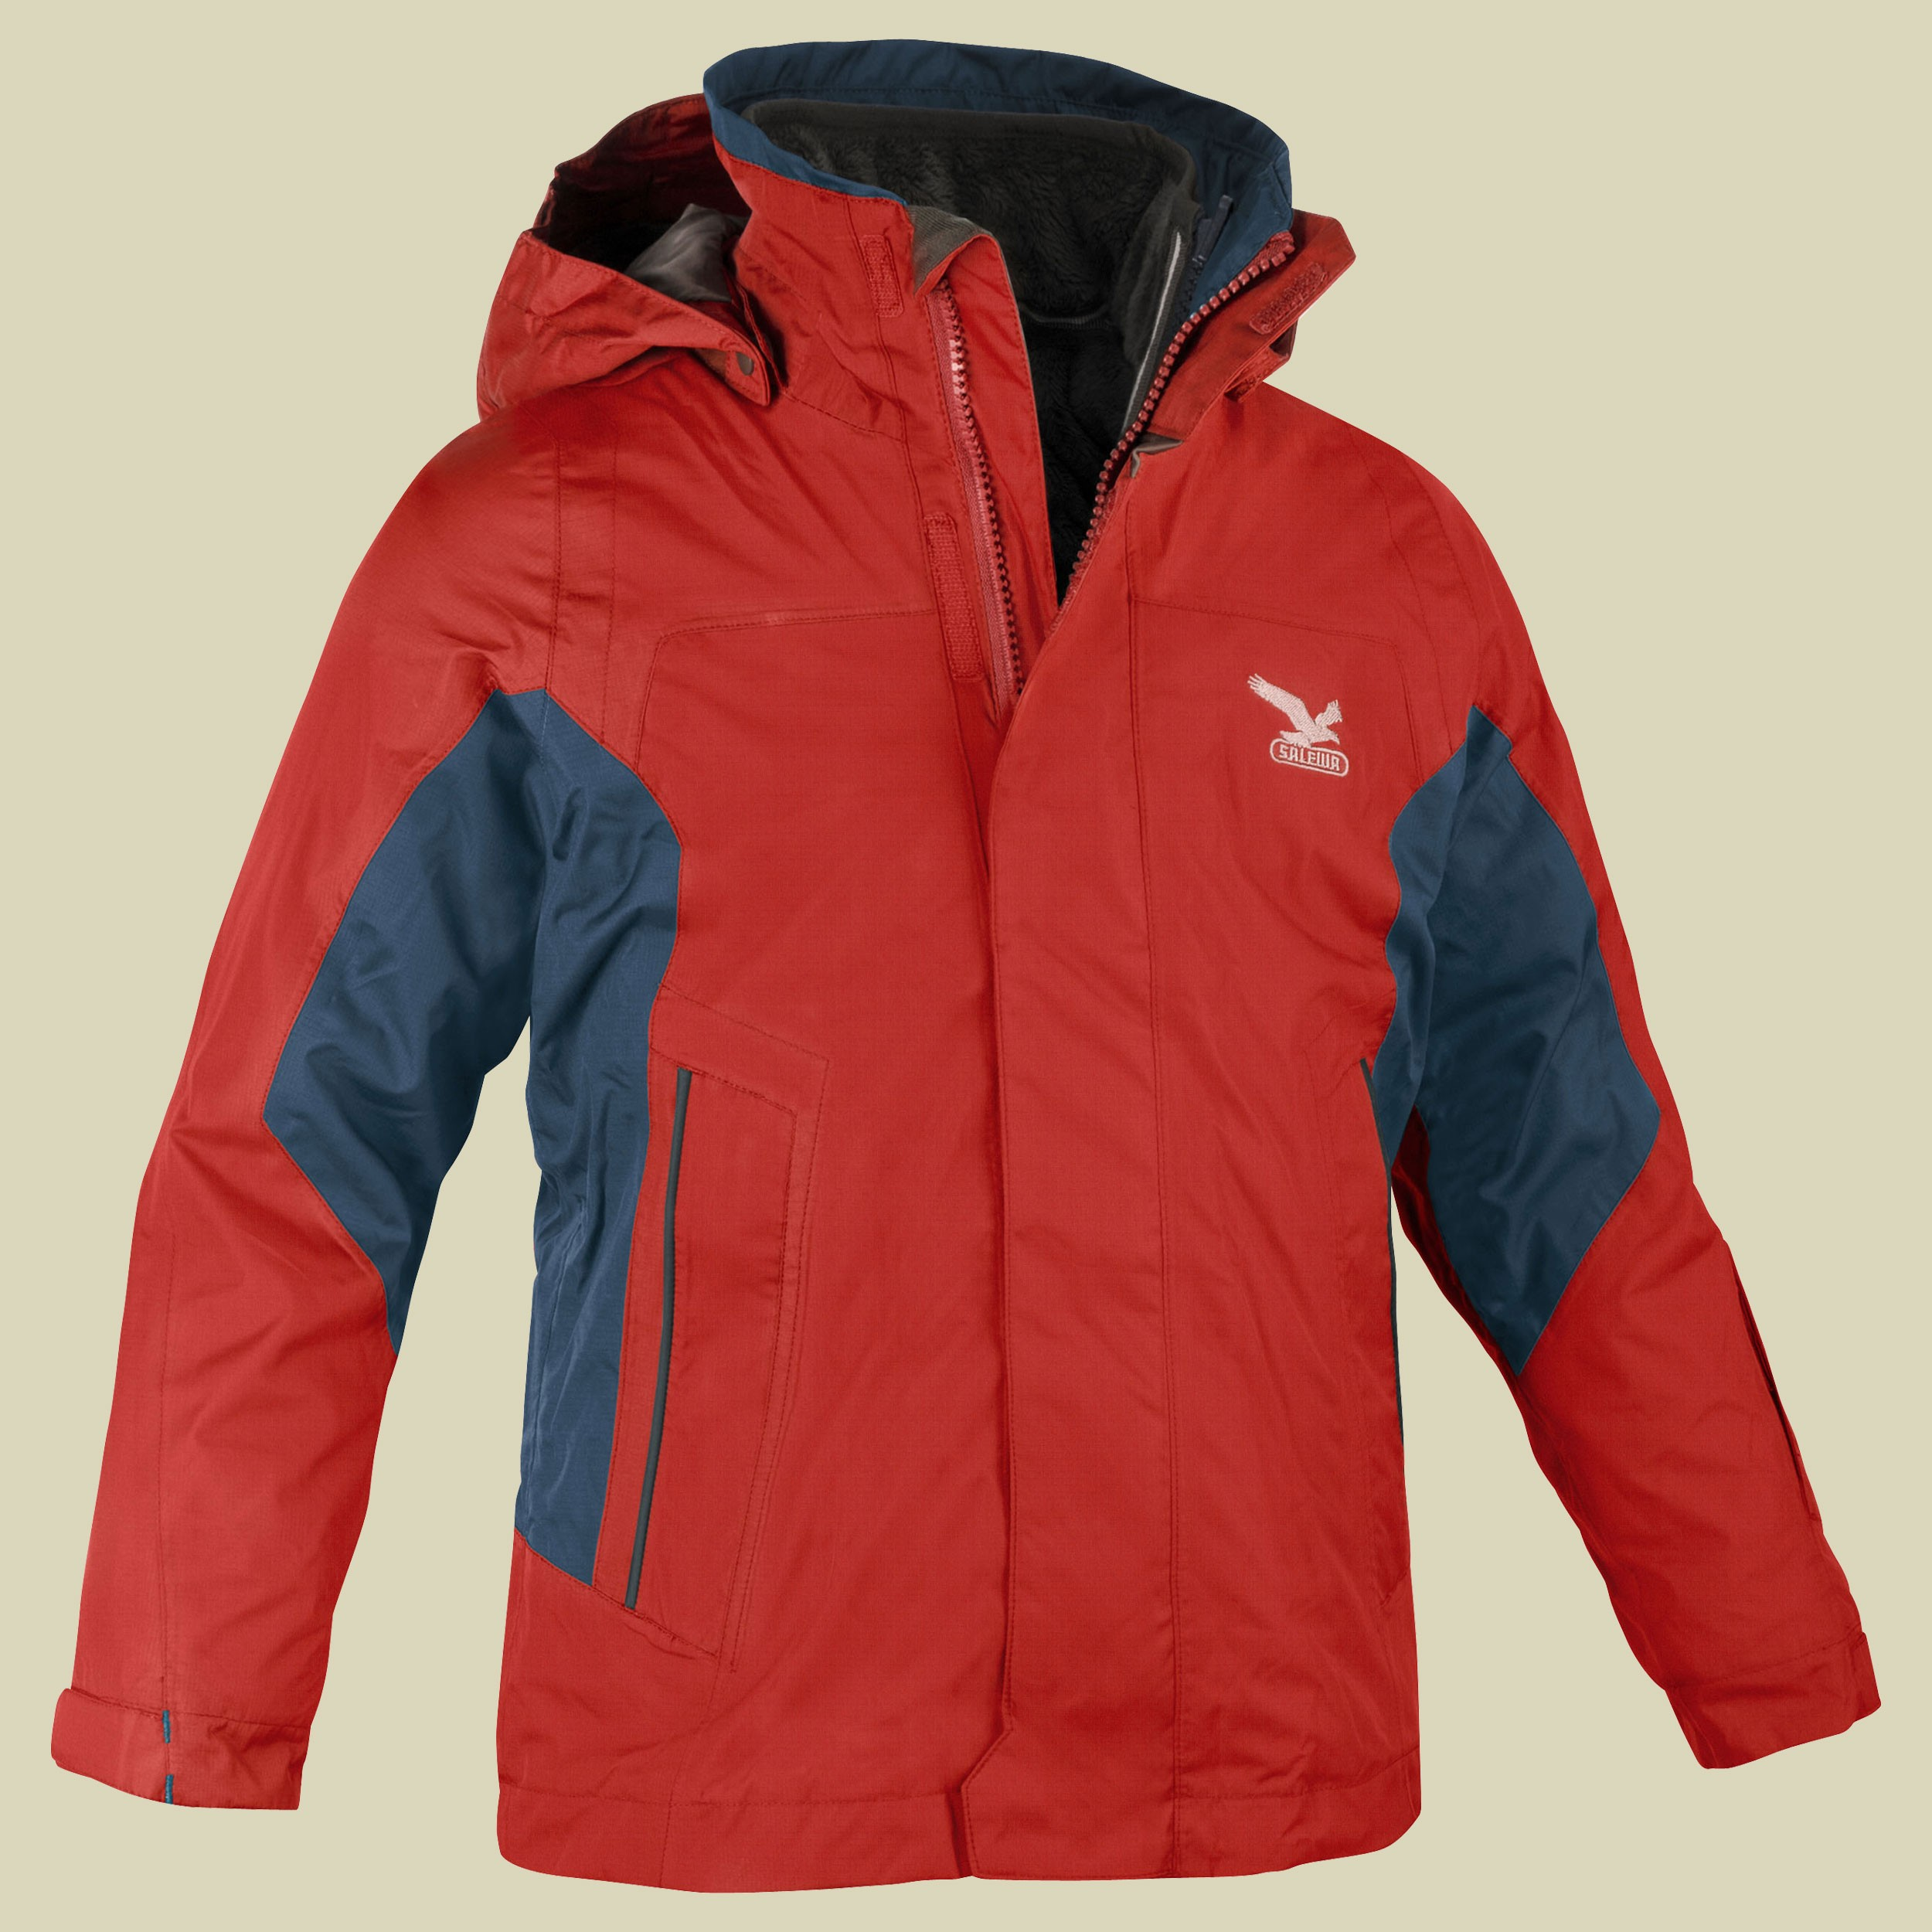 Maldon PTX/PLHL 2X Jacket Kids